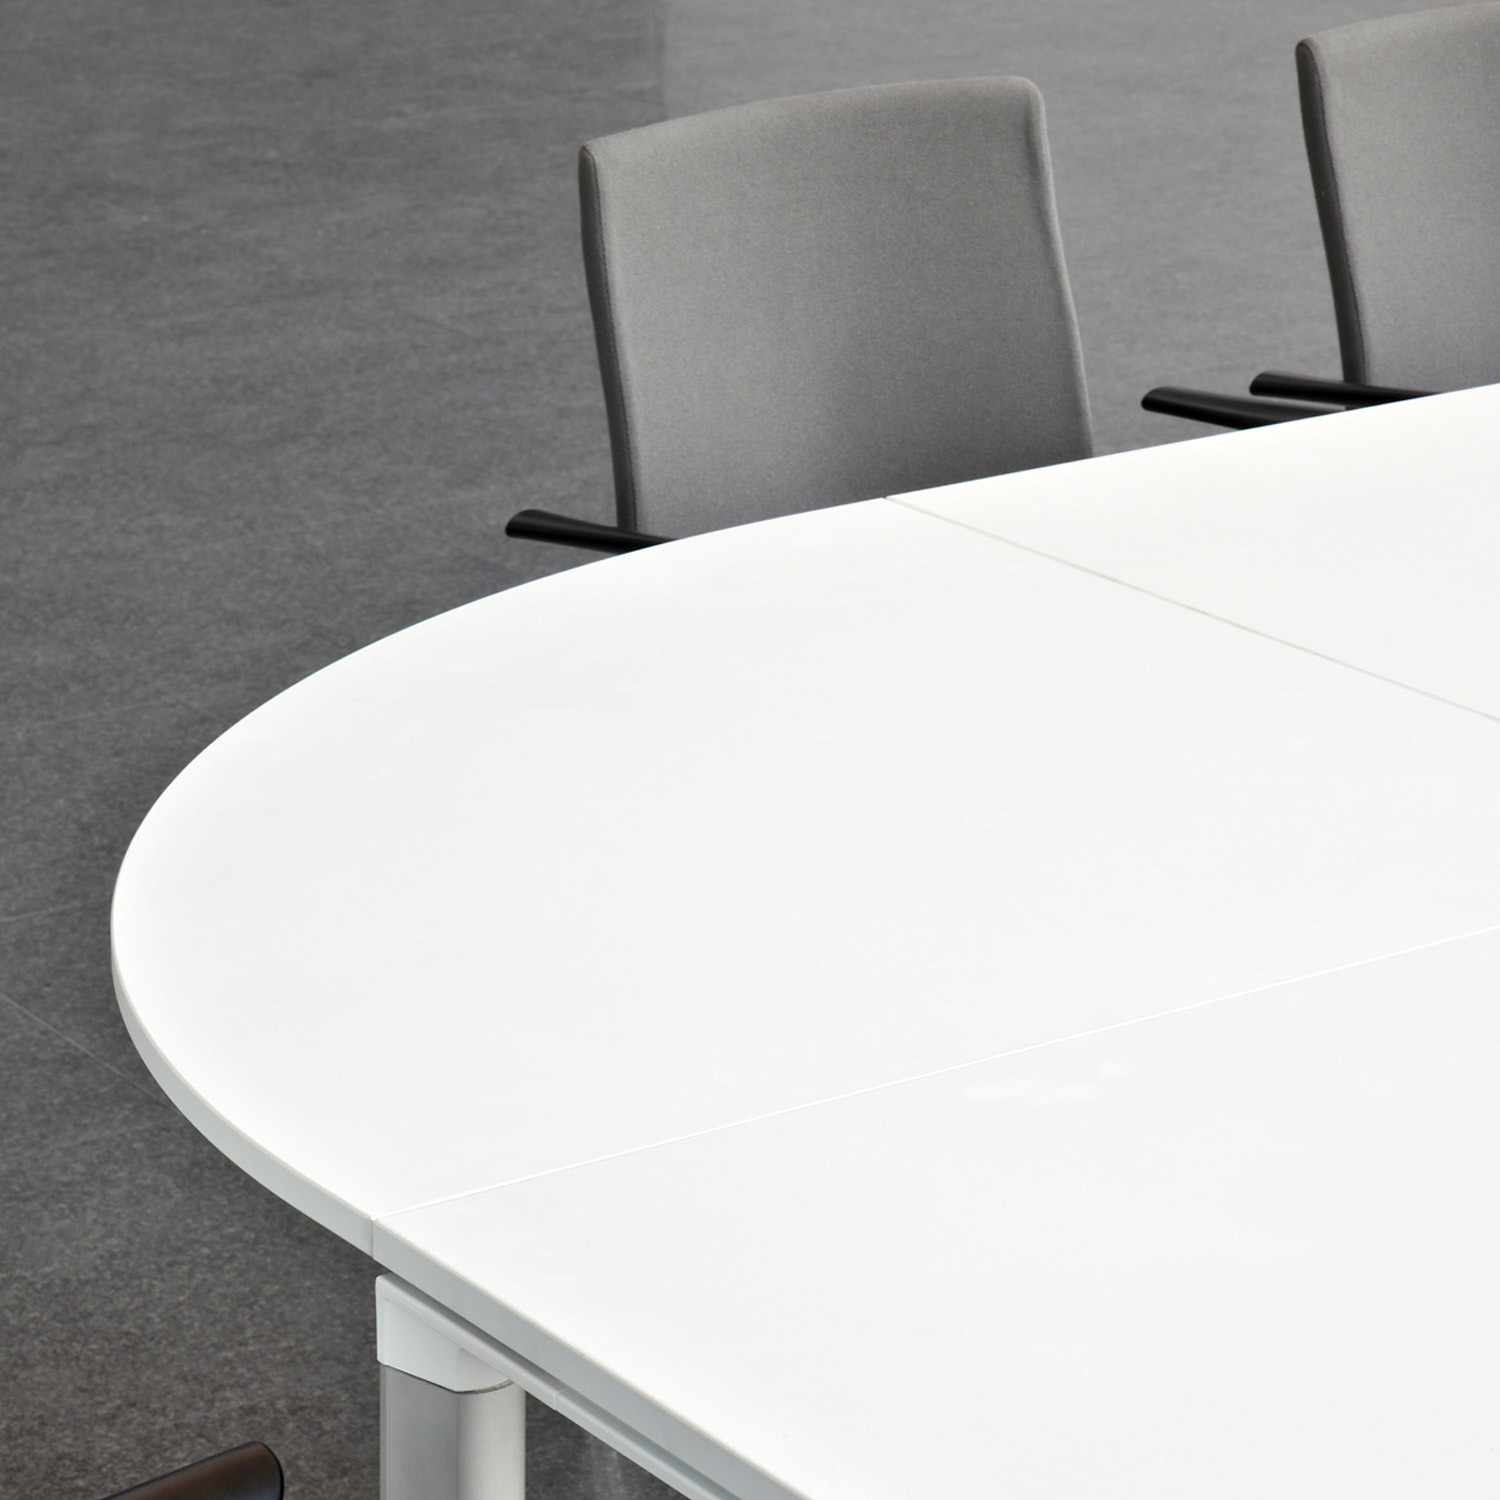 Meet-U Table from Apres Furniture